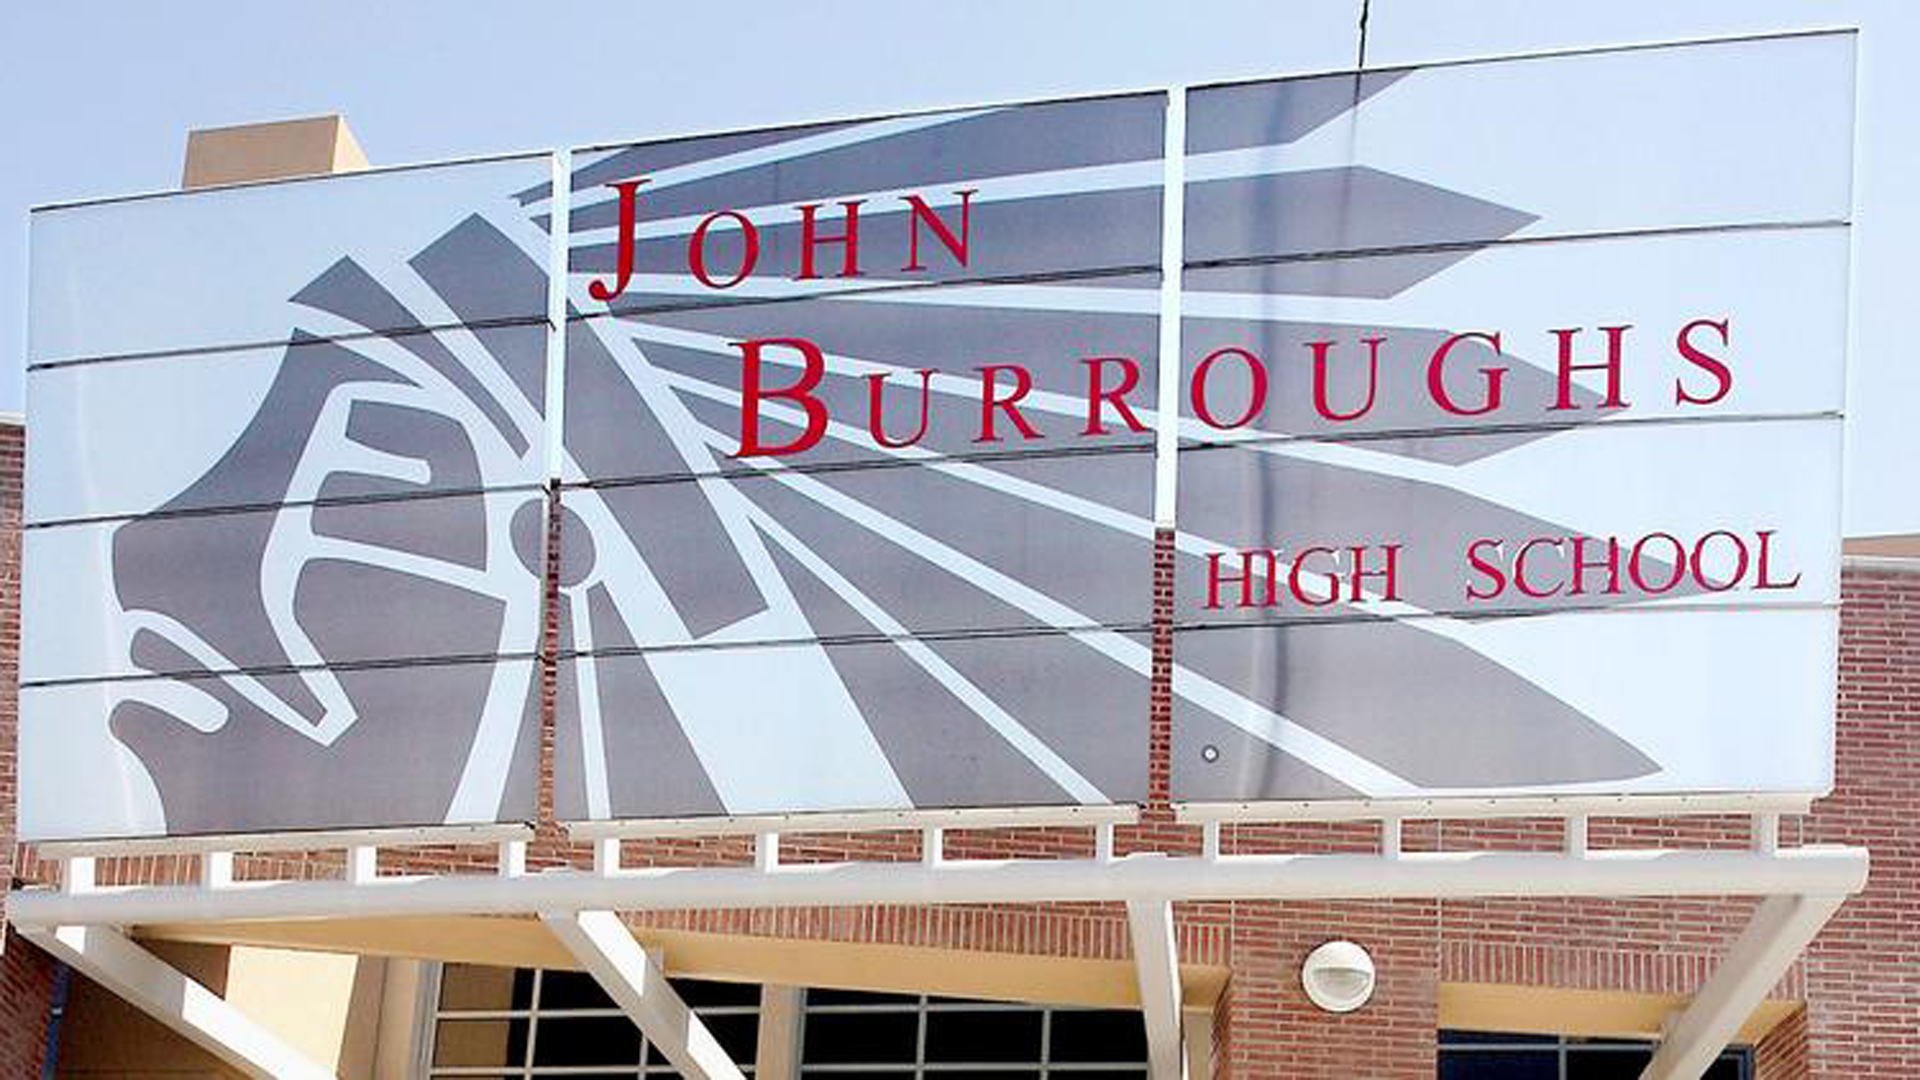 """John Burroughs High student Virginia Begakis said she was pulled out of an honors class earlier this month because she wore a shirt with straps that were too thin during a 110-degree day. """"School is telling us female bodies are distracting, and it's wrong,"""" she said. (Credit Roger Wilson / Burbank Leader)"""